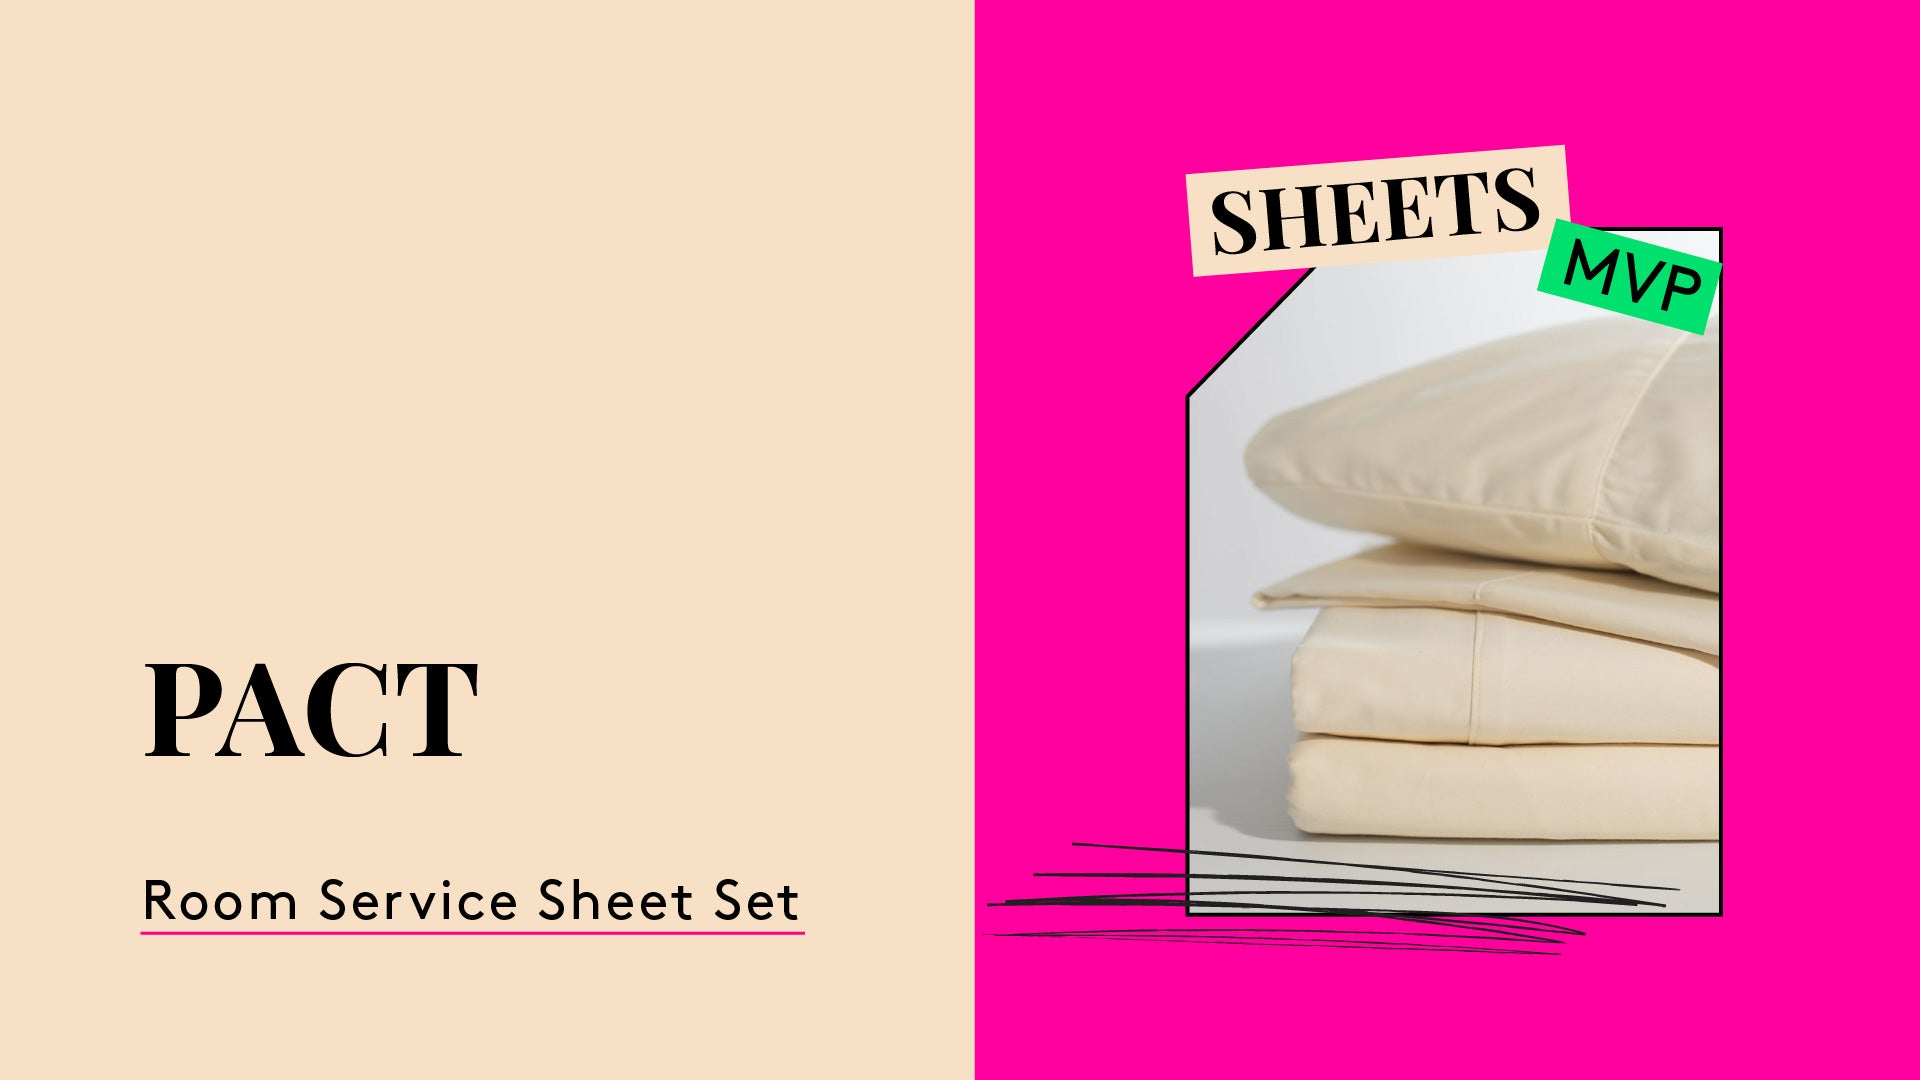 Sheet set MVP. This is a photo of the Pact Room Service Organic cotton sheet set.